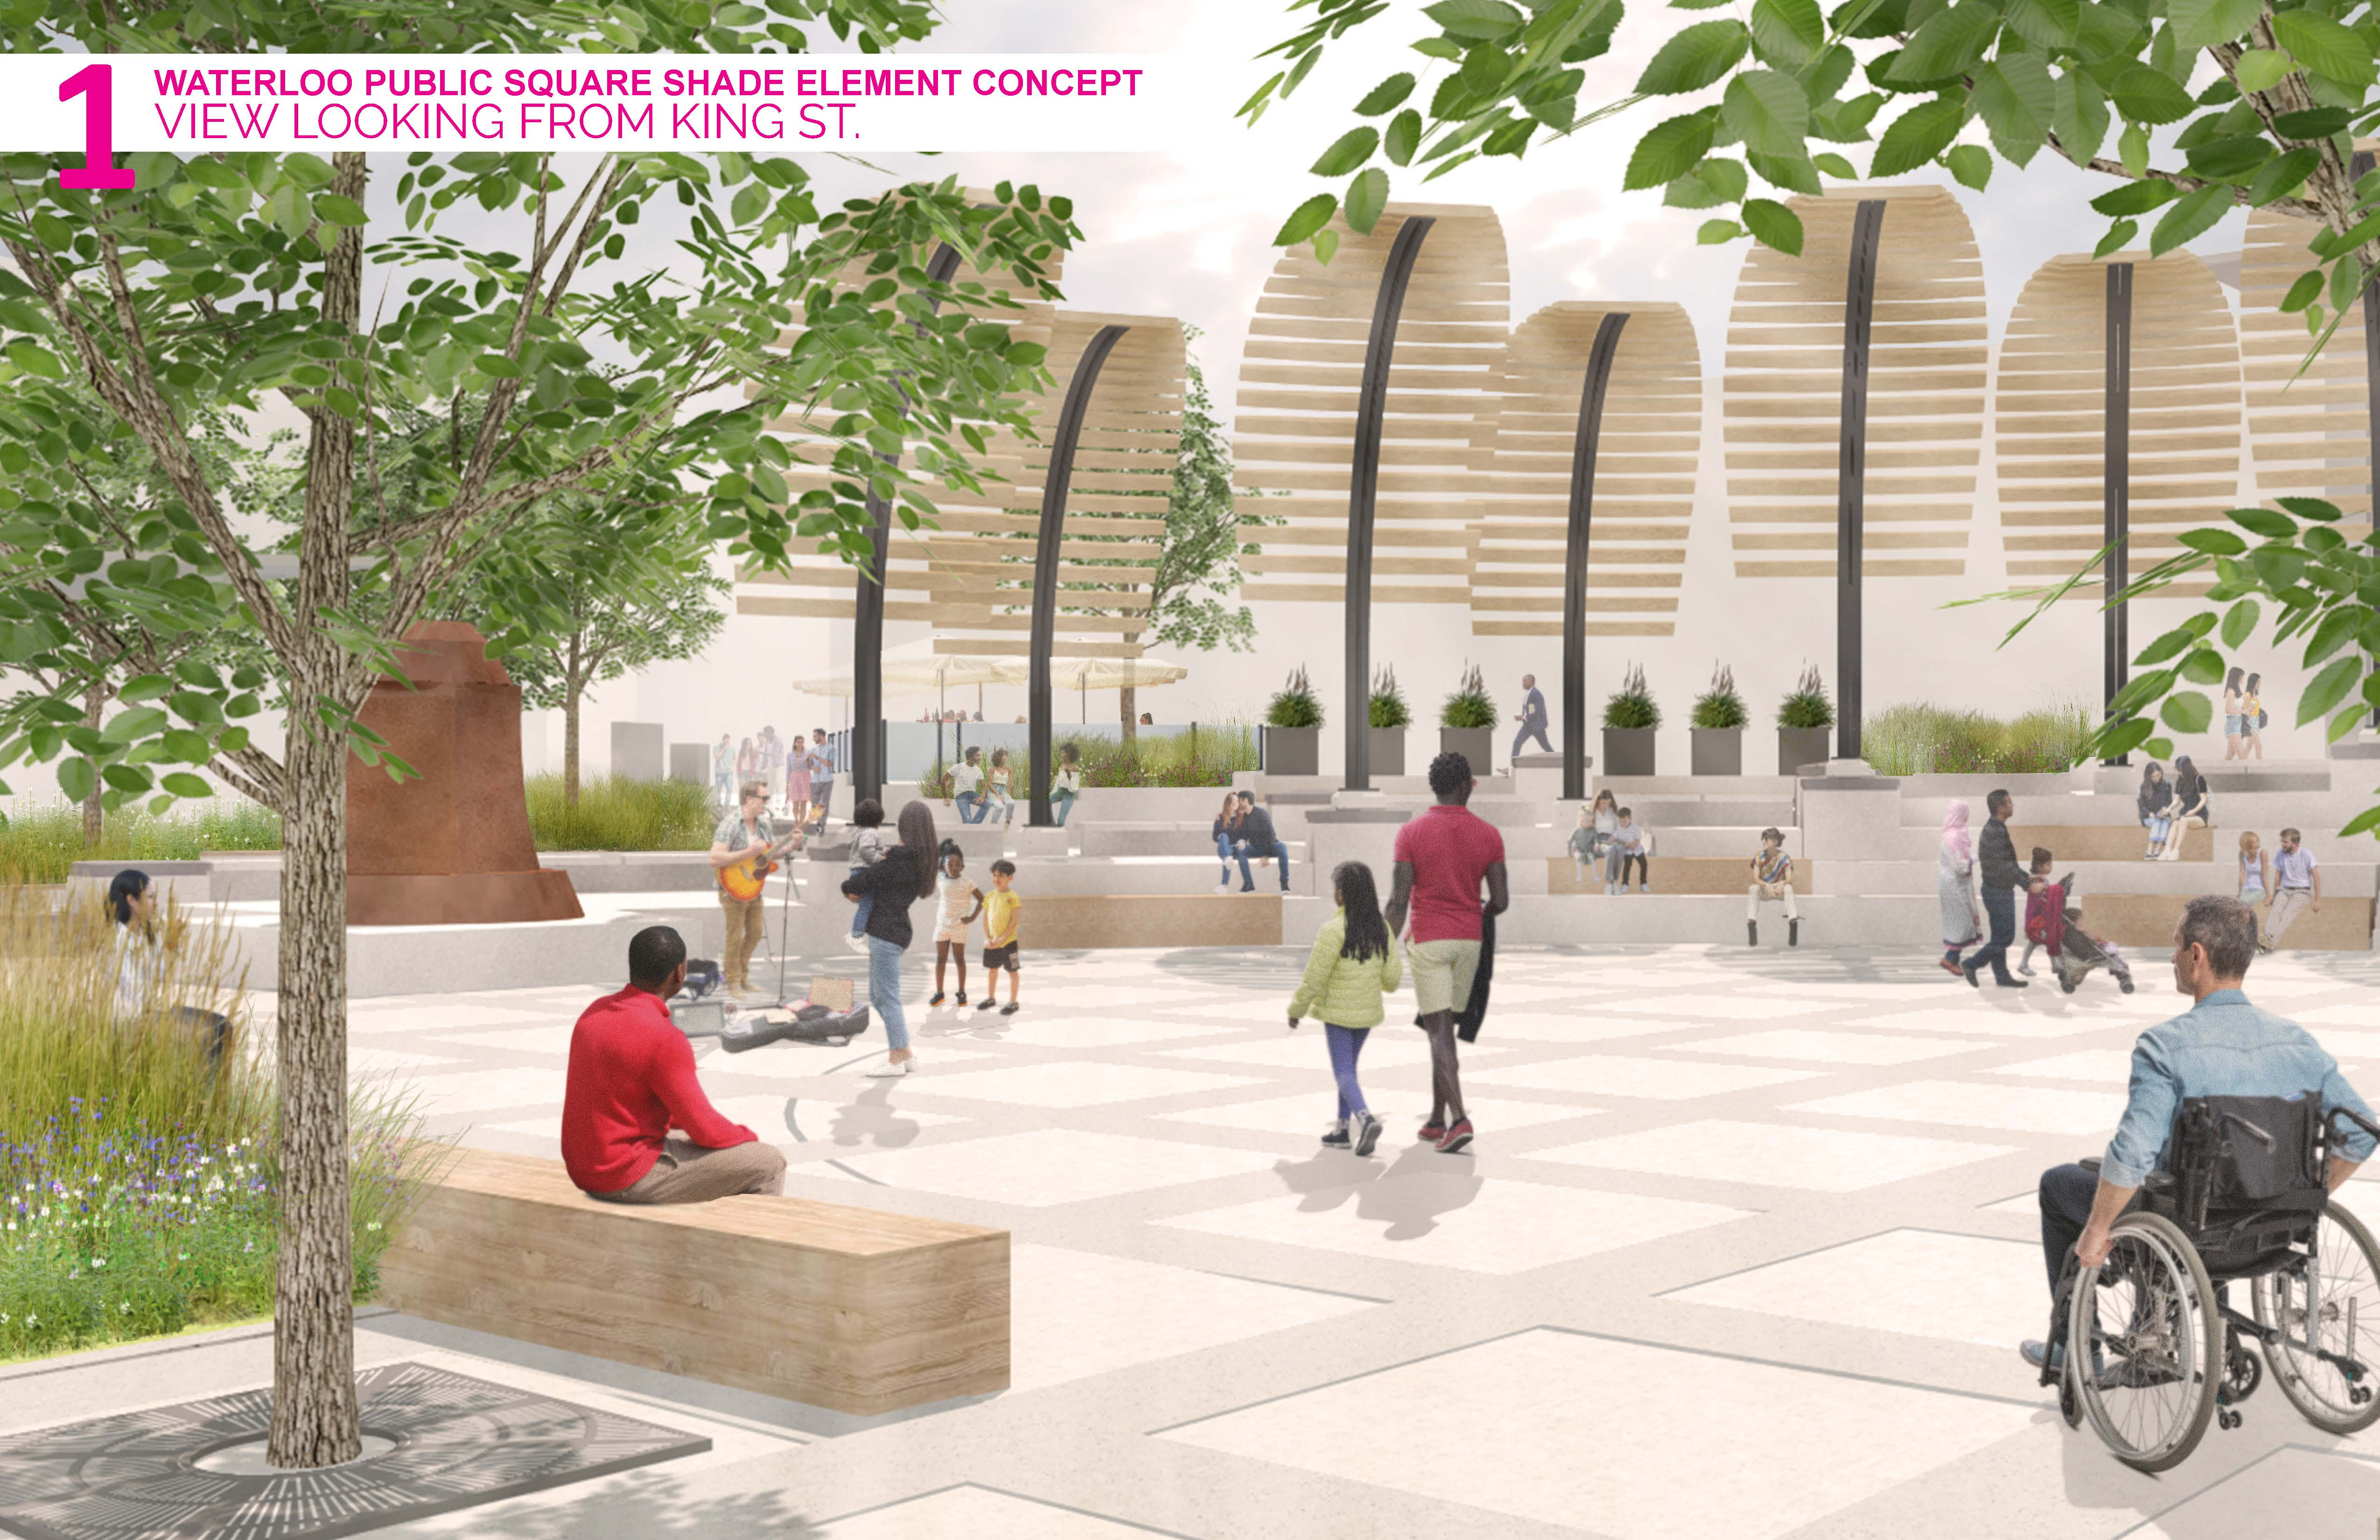 1. Waterloo Public Square shade element concept view looking from King Street, a rendering of the new shade structures in Waterloo Public Square